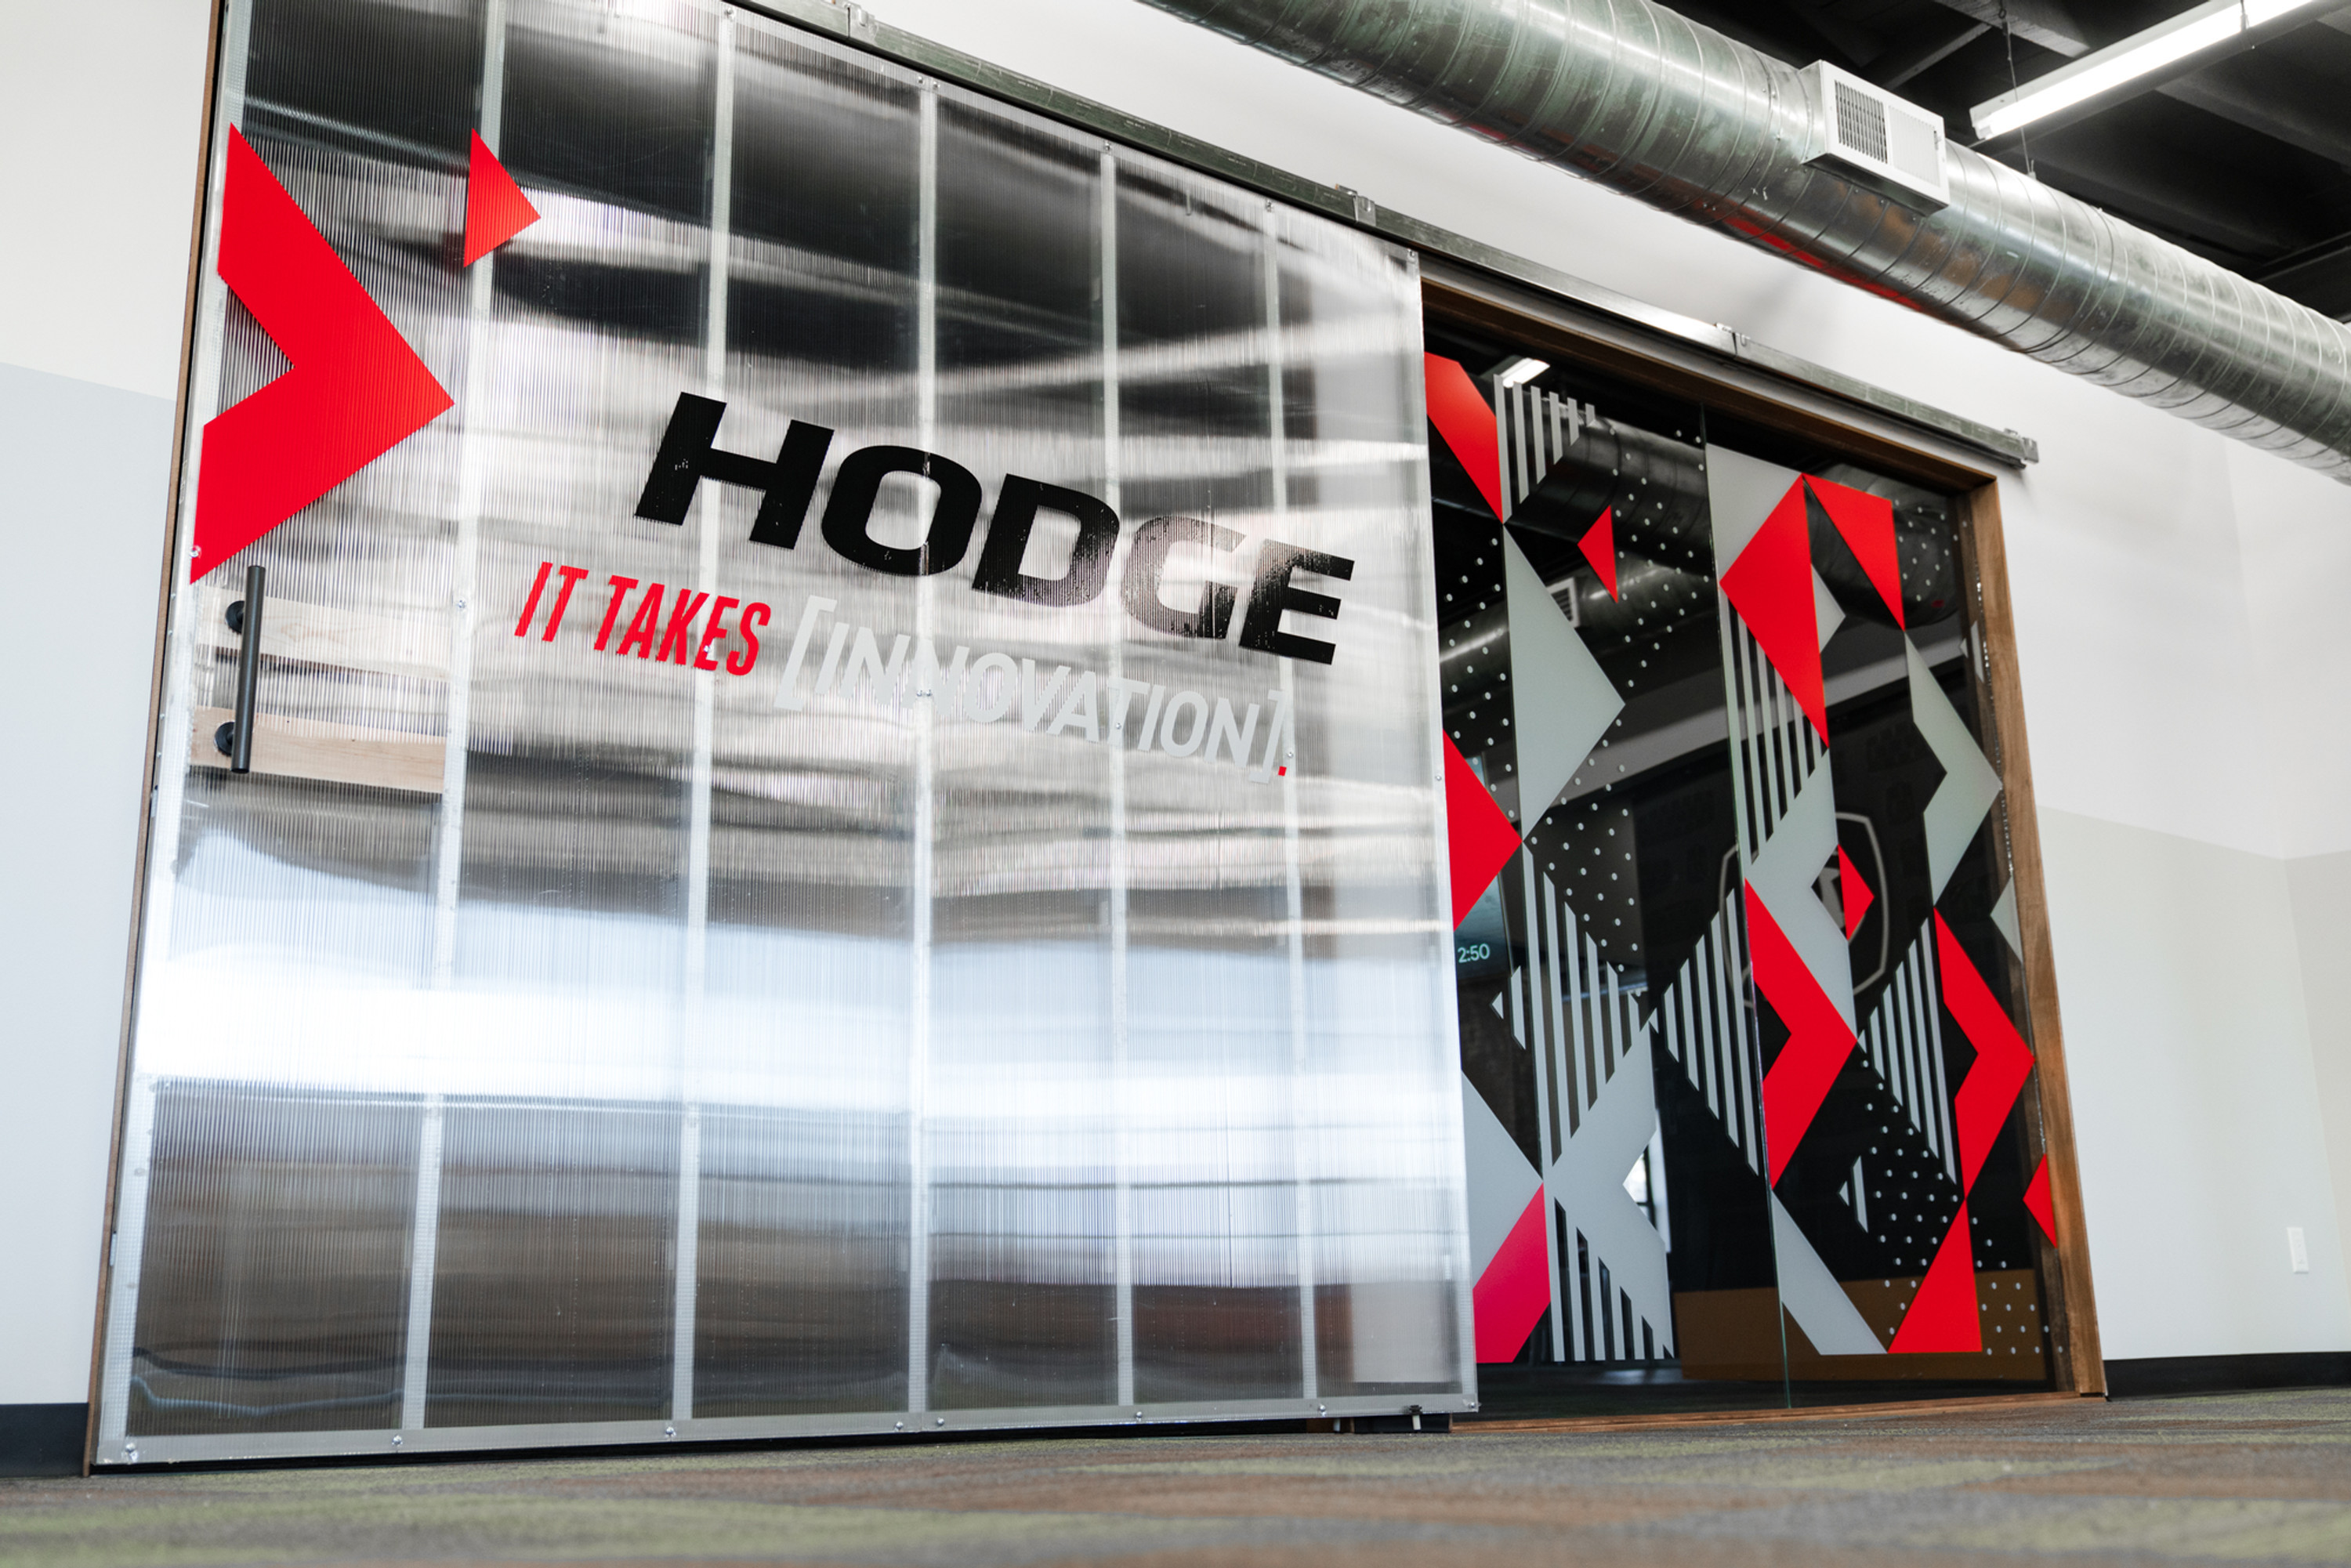 Hodge Innovation Space - 1/2 Day